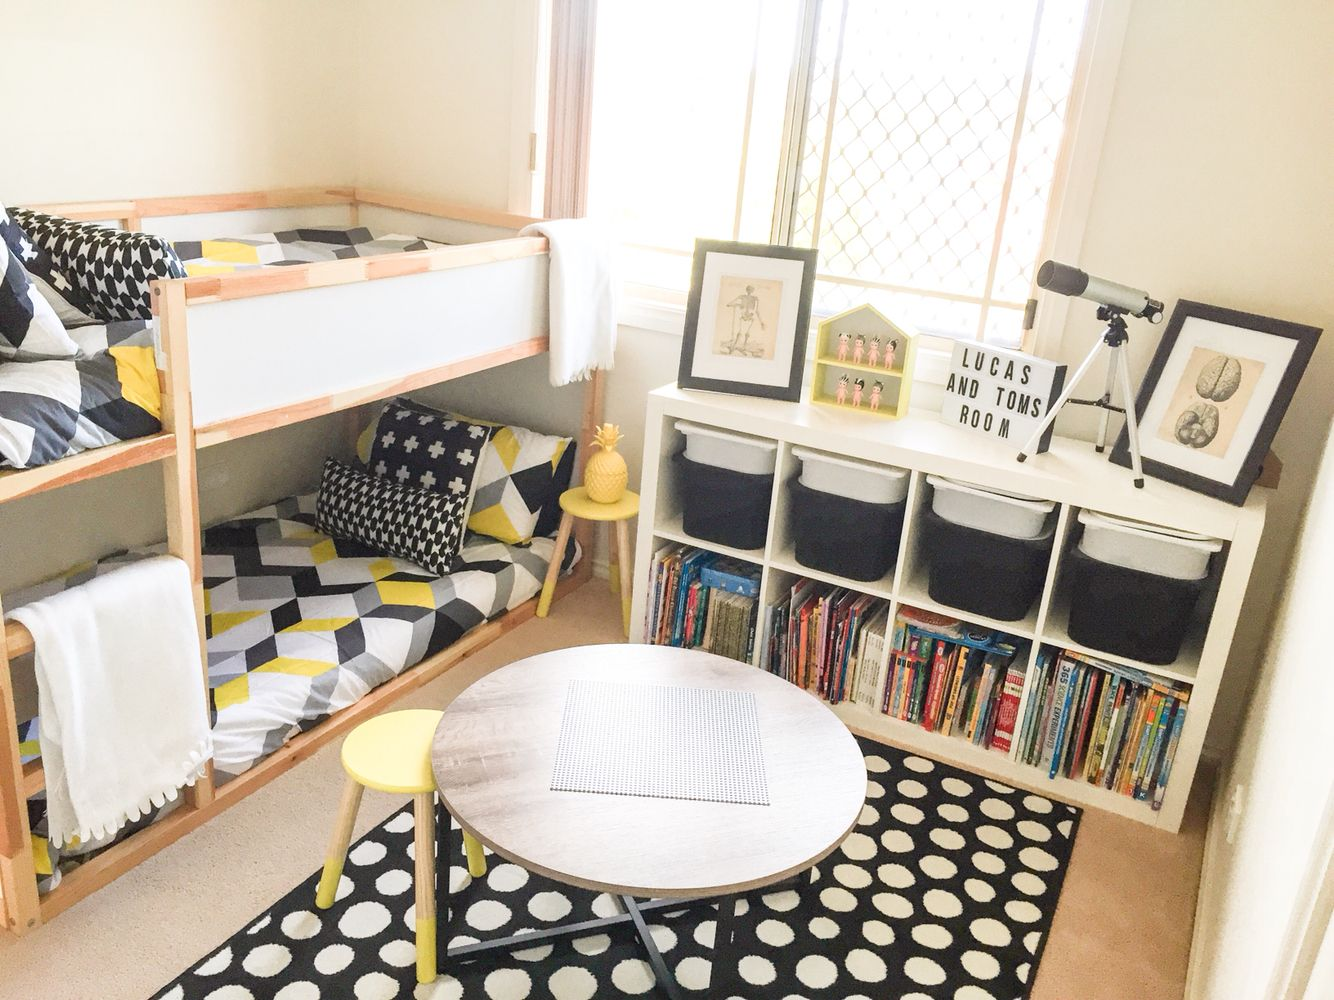 Shared Boys Geometrical Bedroom Combination Of Ikea And